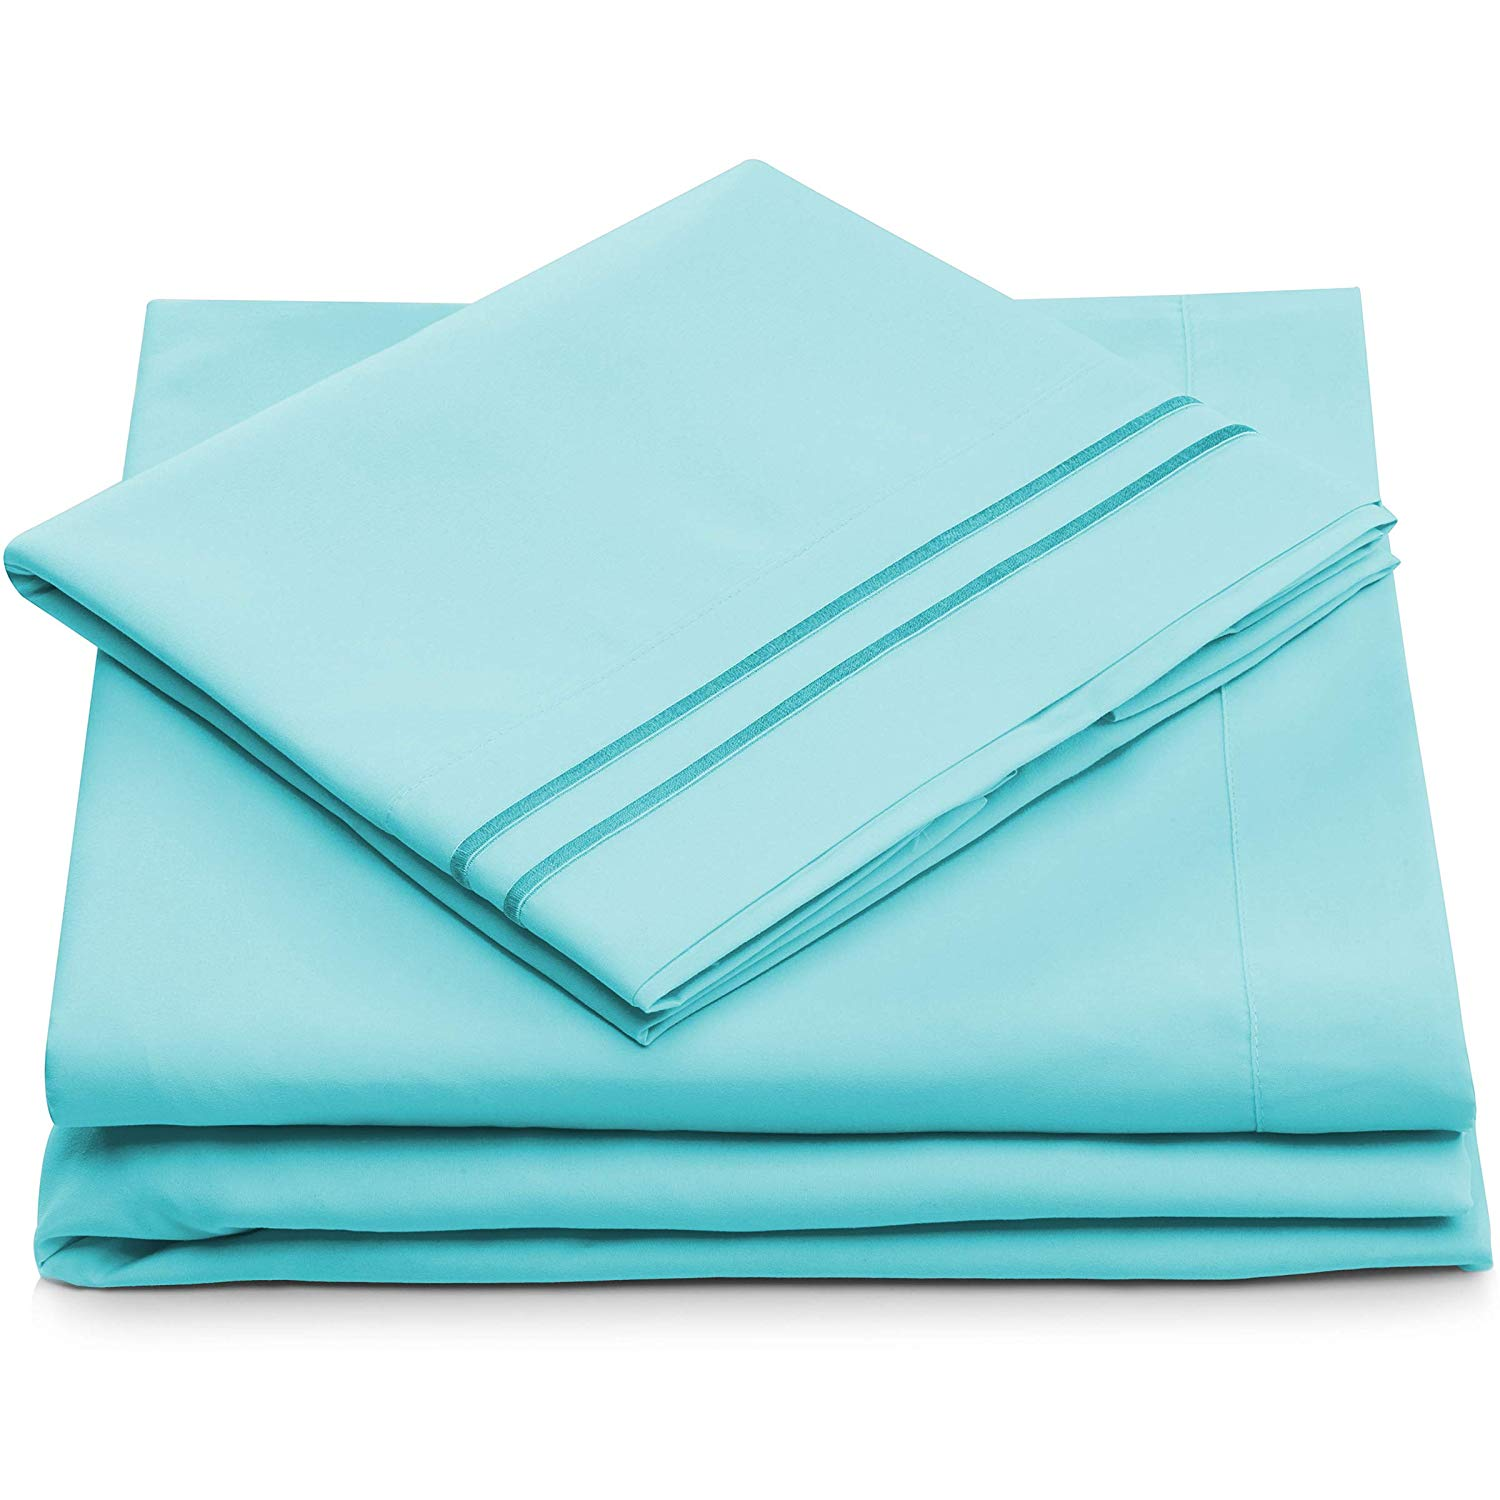 King Size Bed Sheets - Pastel Blue Luxury Sheet Set - Deep Pocket - Super Soft Hotel Bedding - Cool & Wrinkle Free - 1 Fitted, 1 Flat, 2 Pillow Cases - Aqua King Sheets - 4 Piece